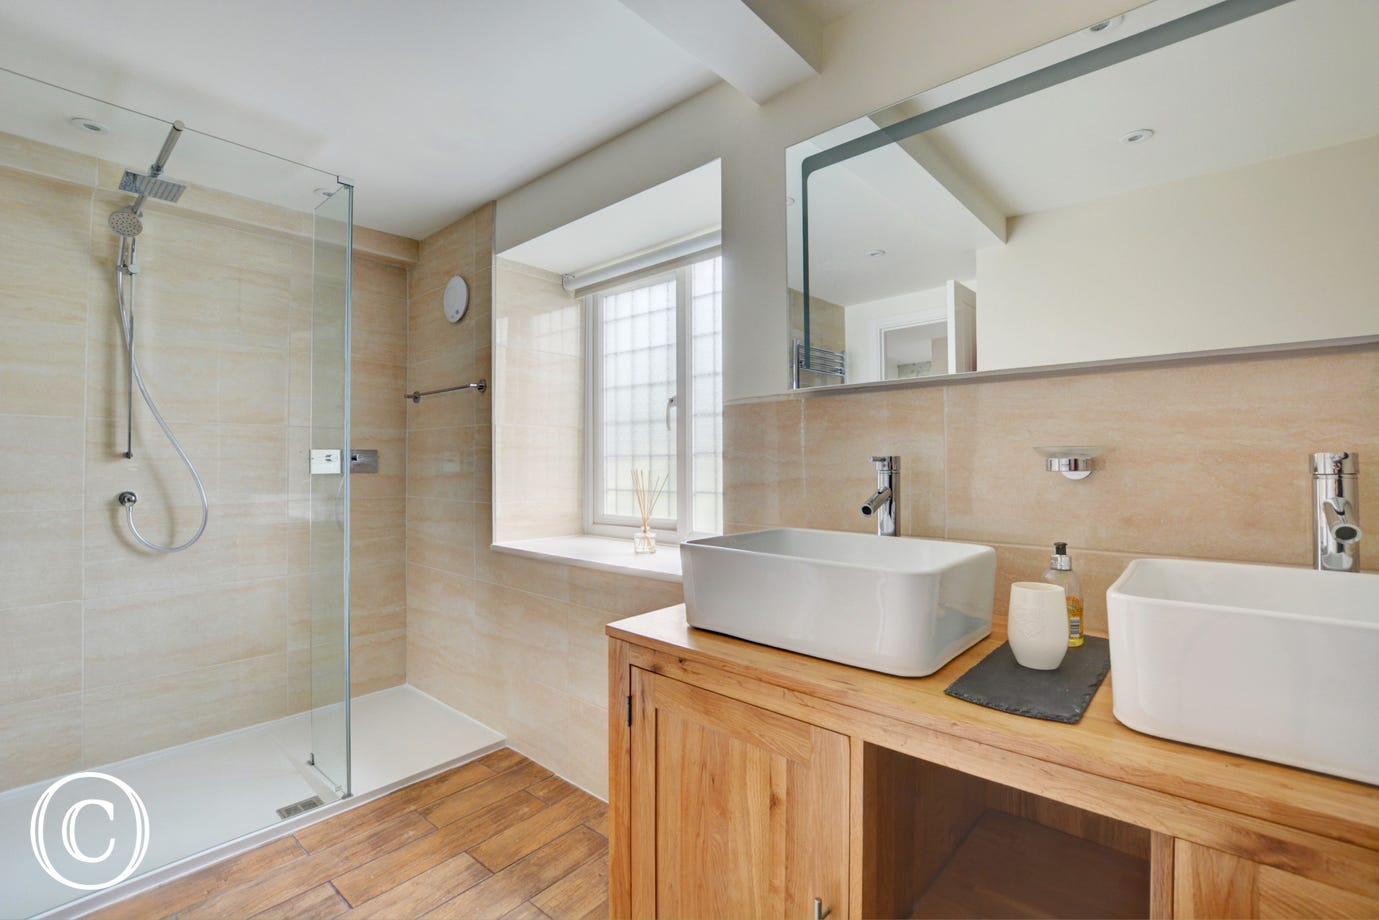 Bedroom 1 En Suite with twin washbasin, shower cubicle and wc